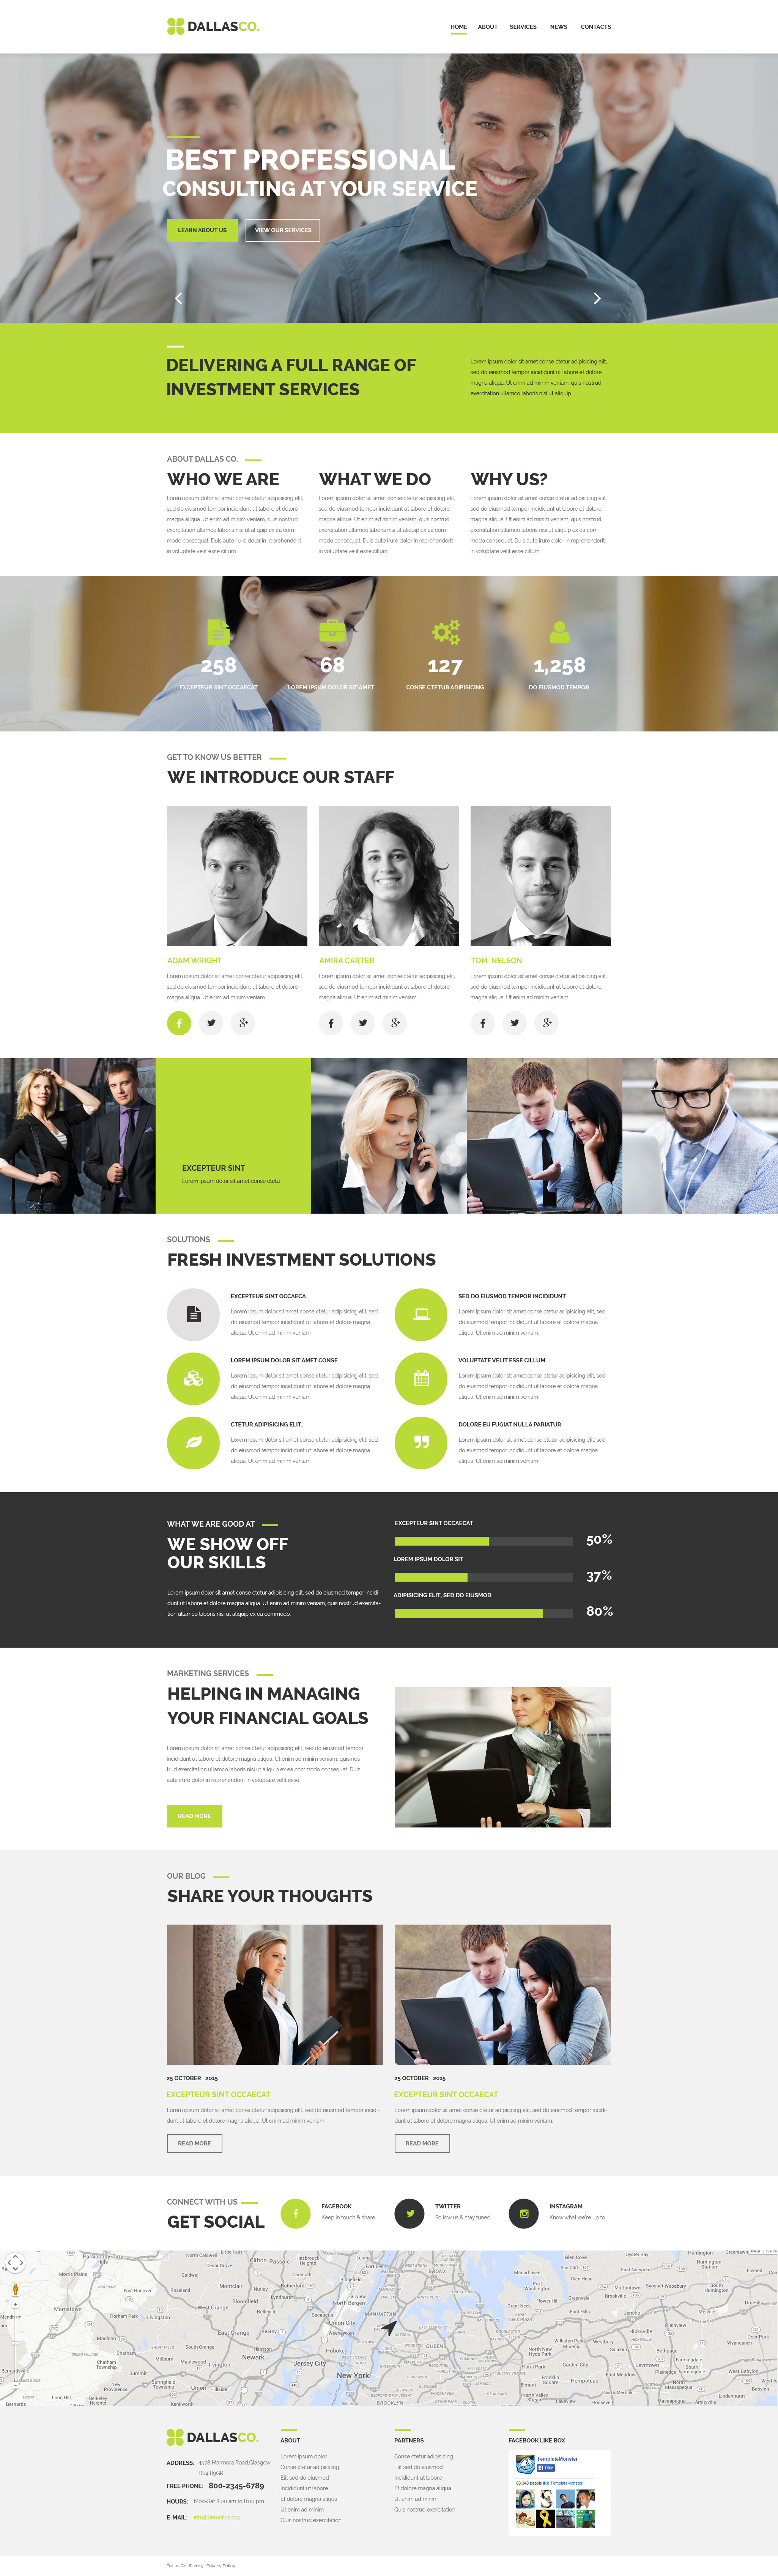 The Dallas Company Responsive Javascript Animated Design 53750, one of the best website templates of its kind (business, most popular), also known as dallas company website template, business website template, success company website template, enterprise solution website template, business website template, industry website template, technical website template, clients website template, customer support website template, automate website template, flow website template, services website template, plug-in website template, flex website template, profile website template, principles website template, web products website template, technology system and related with dallas company, business, success company, enterprise solution, business, industry, technical, clients, customer support, automate, flow, services, plug-in, flex, profile, principles, web products, technology system, etc.